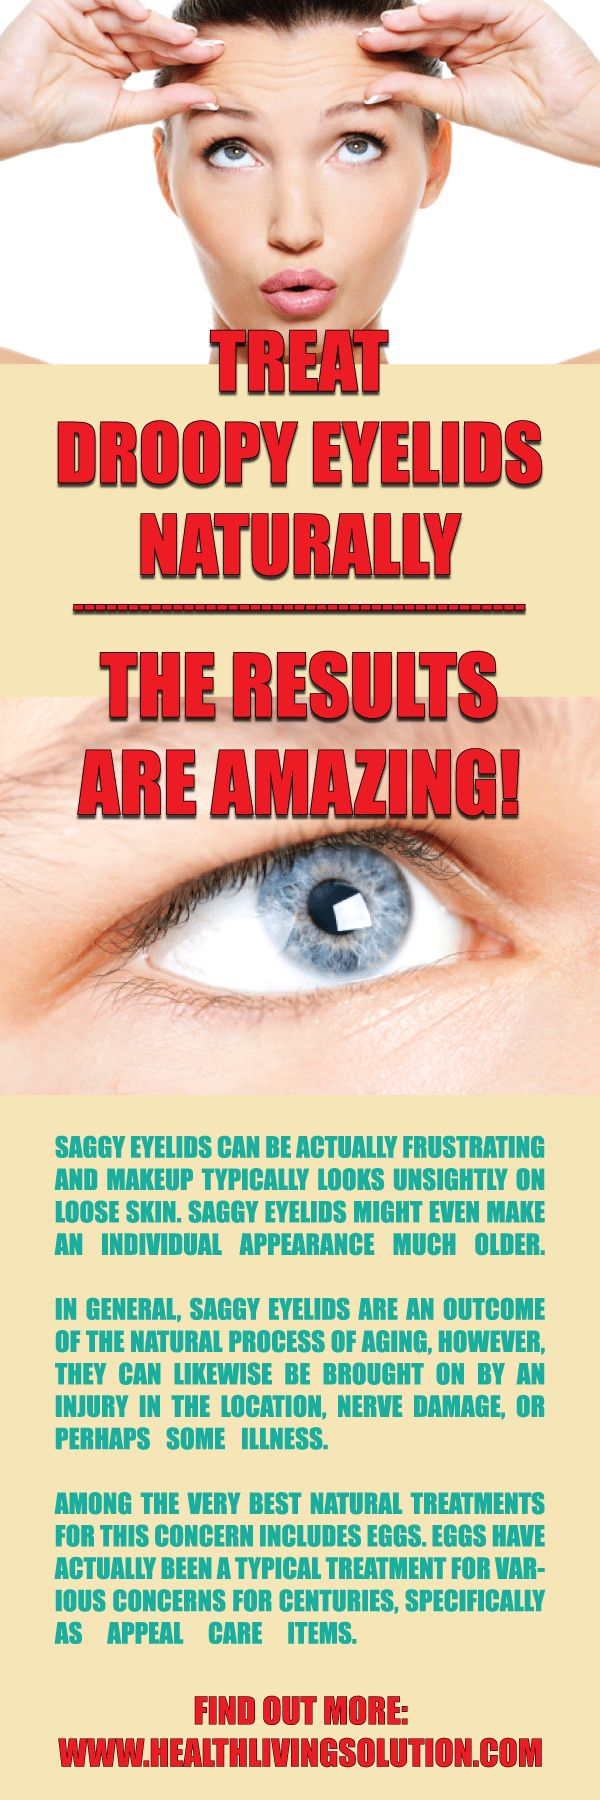 Saggy eyelids can be actually frustrating and makeup typically looks unsightly on loose skin. Saggy eyelids might even make an individual appearance much older. In general, saggy eyelids are an outcome of the natural process of aging, however, they can likewise be brought on by an injury in the location, nerve damage, or perhaps some …